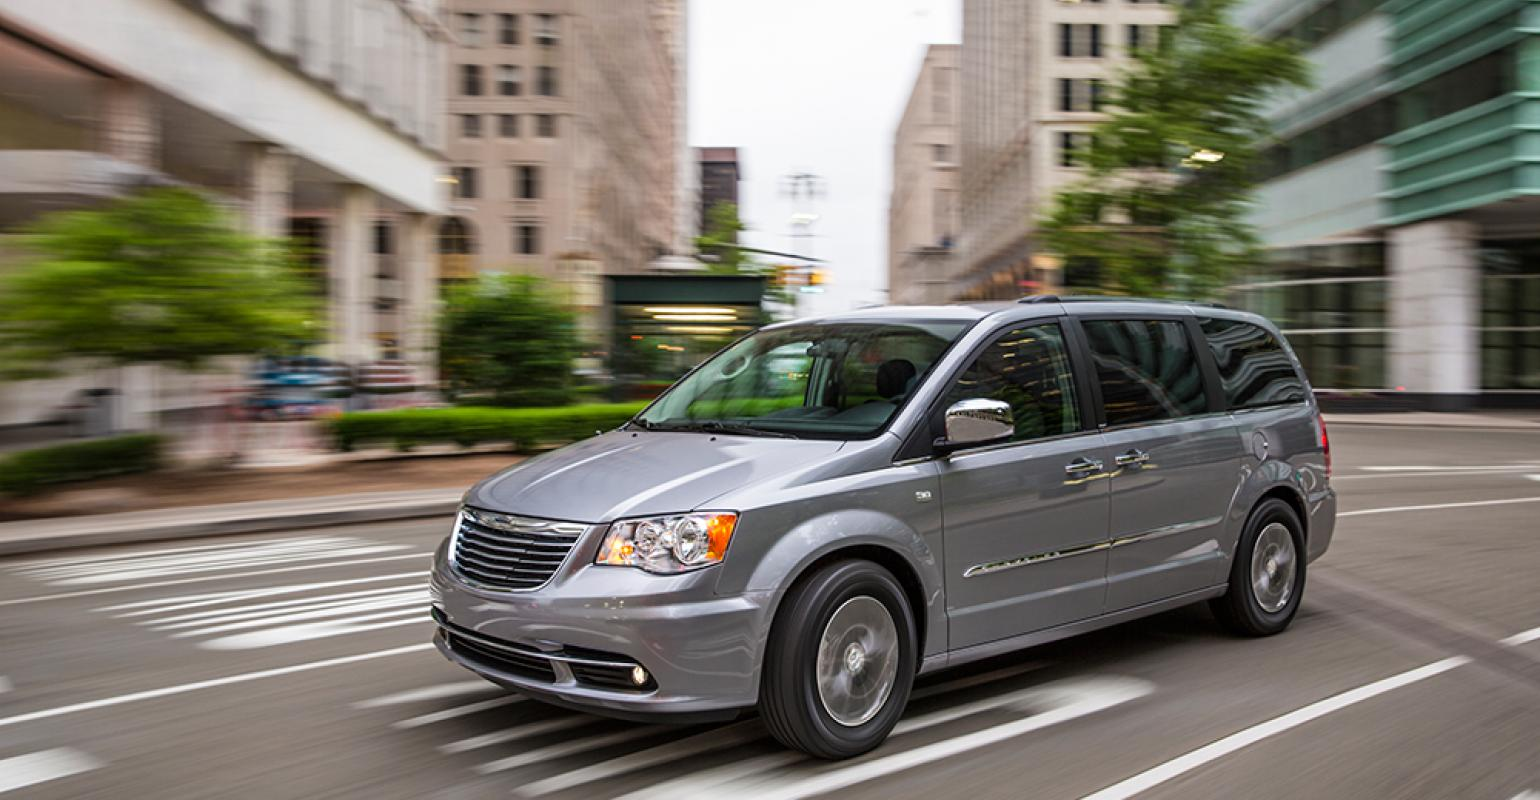 Chrysler Brand To Retain Minivan With Replacement For Town Amp Country Due In 2016